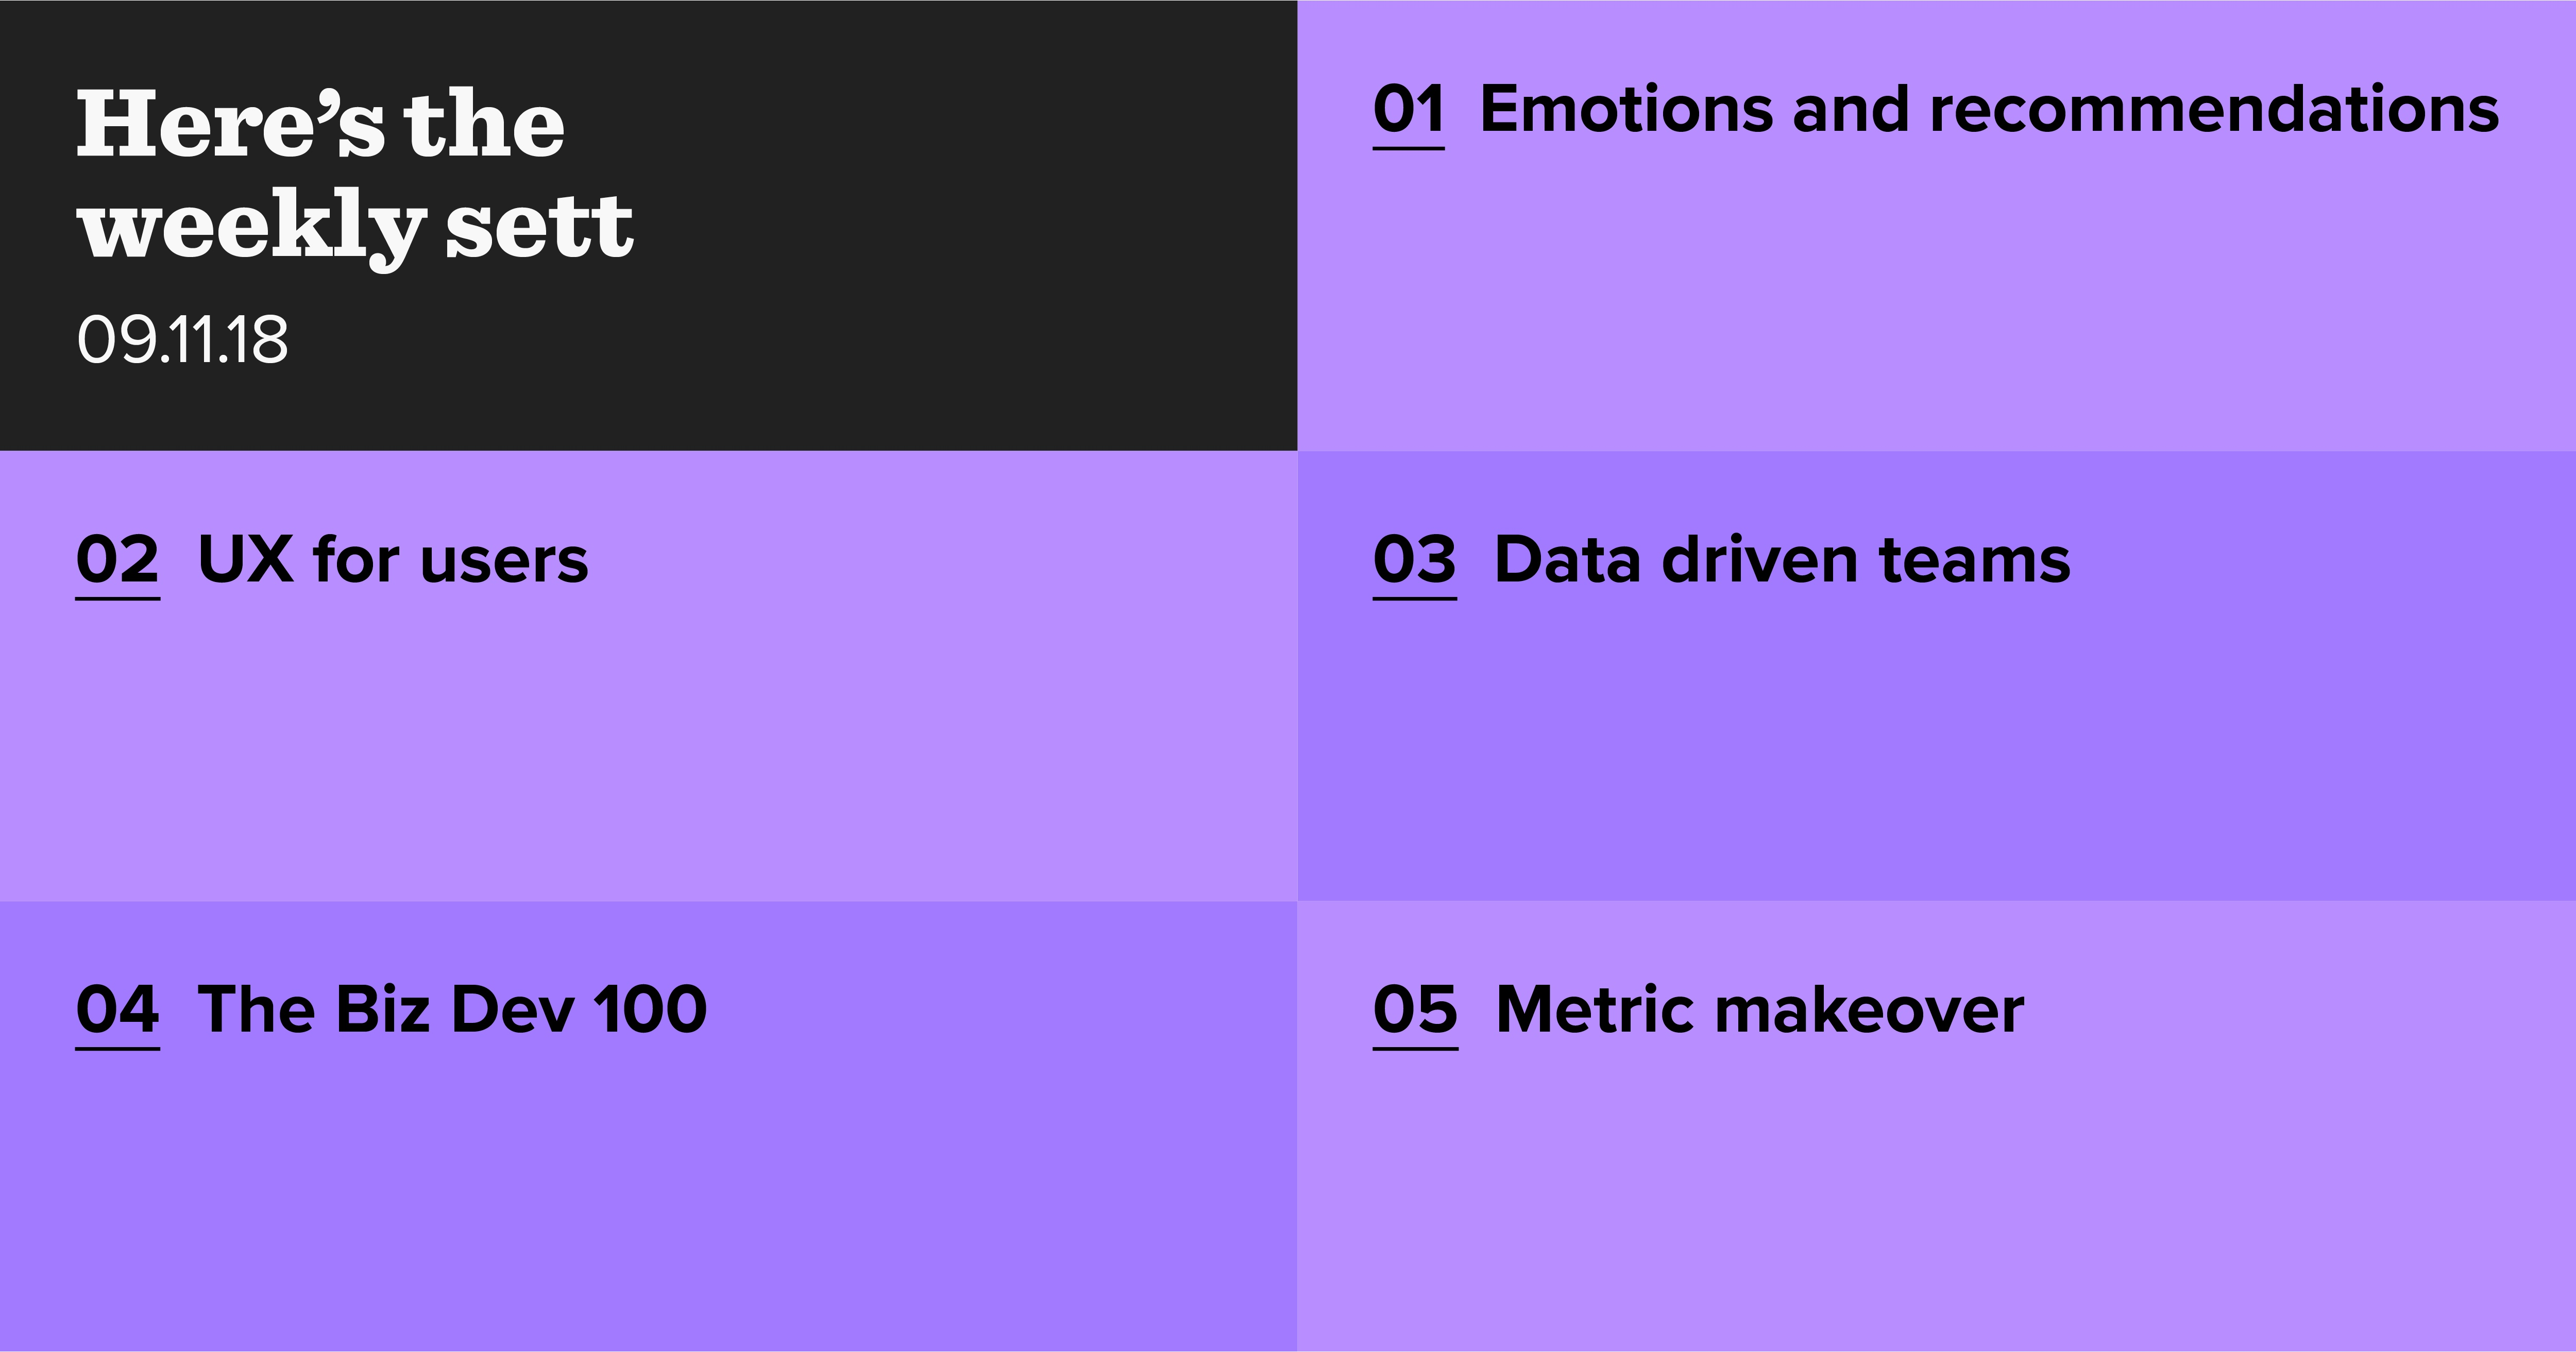 The Weekly Sett: Emotions and Recommendations, 2. UX for users, 3. Data driven teams, 4. The Biz Dev 100, 5. Metric makeover